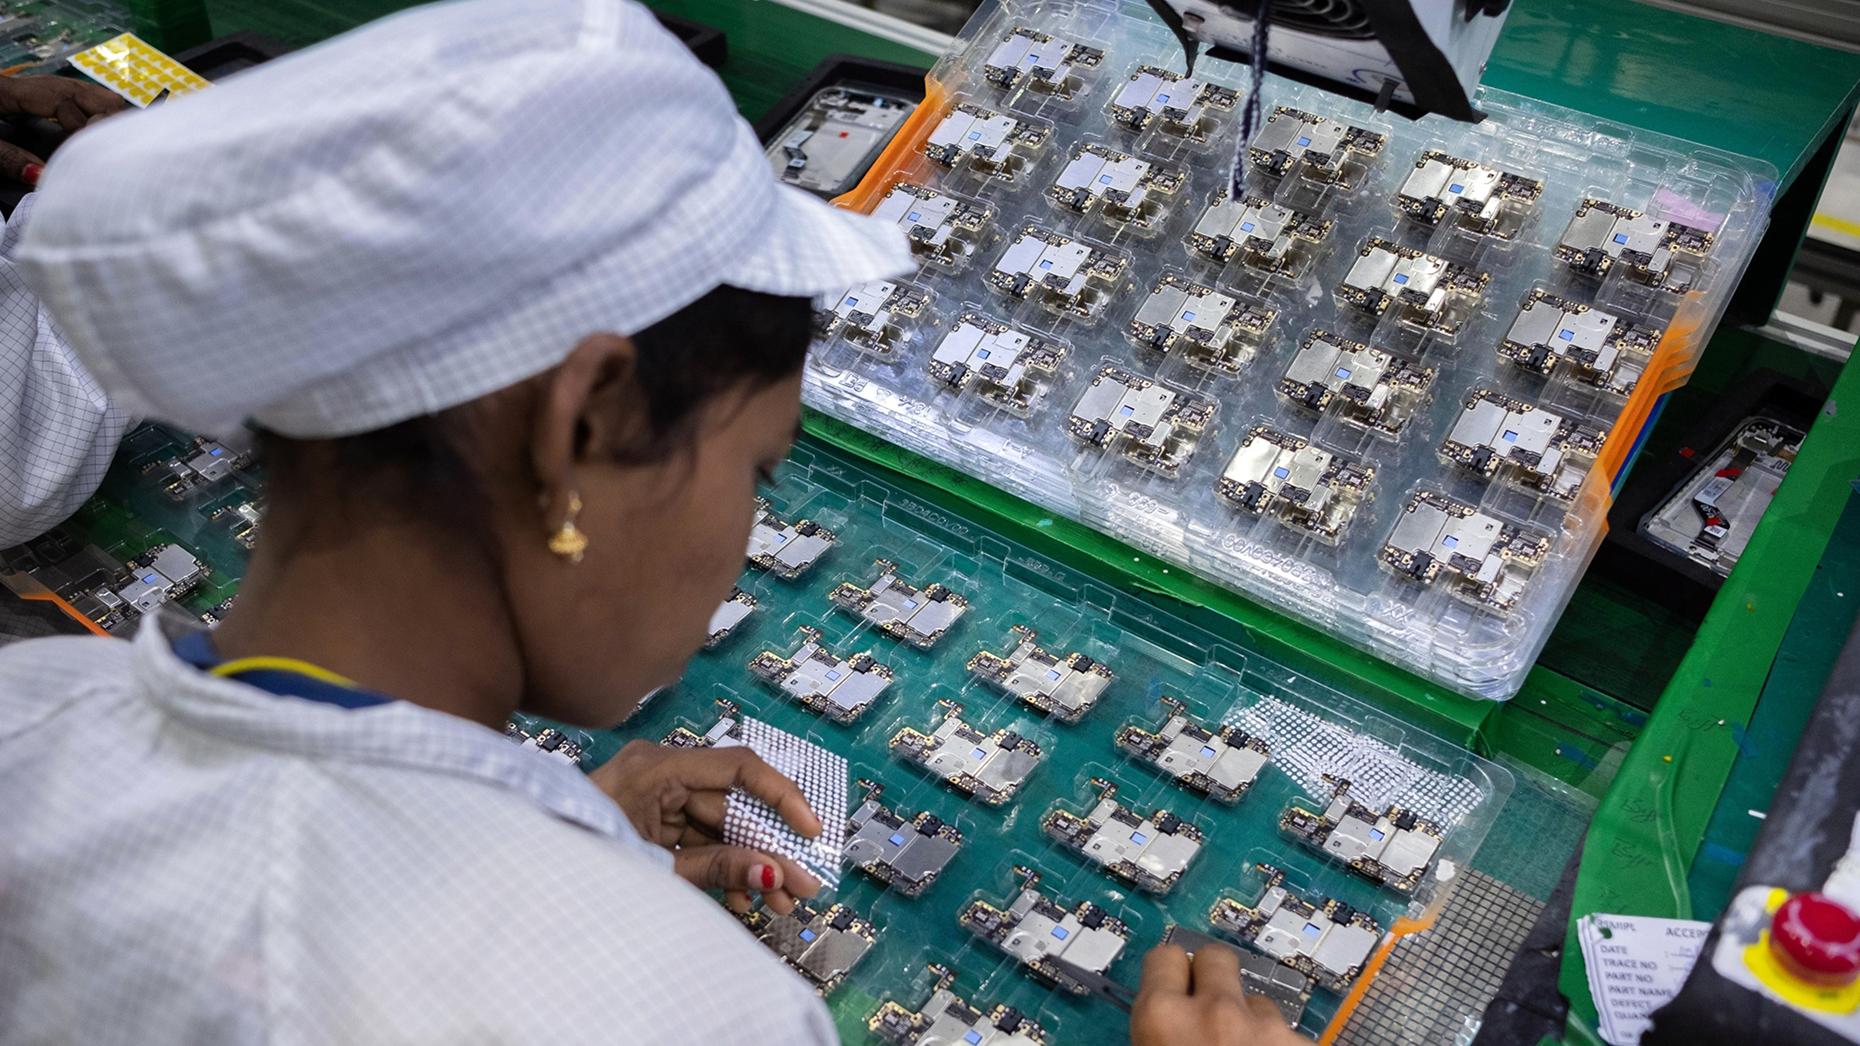 An employee at a Foxconn factory in India. Photo by Bloomberg.